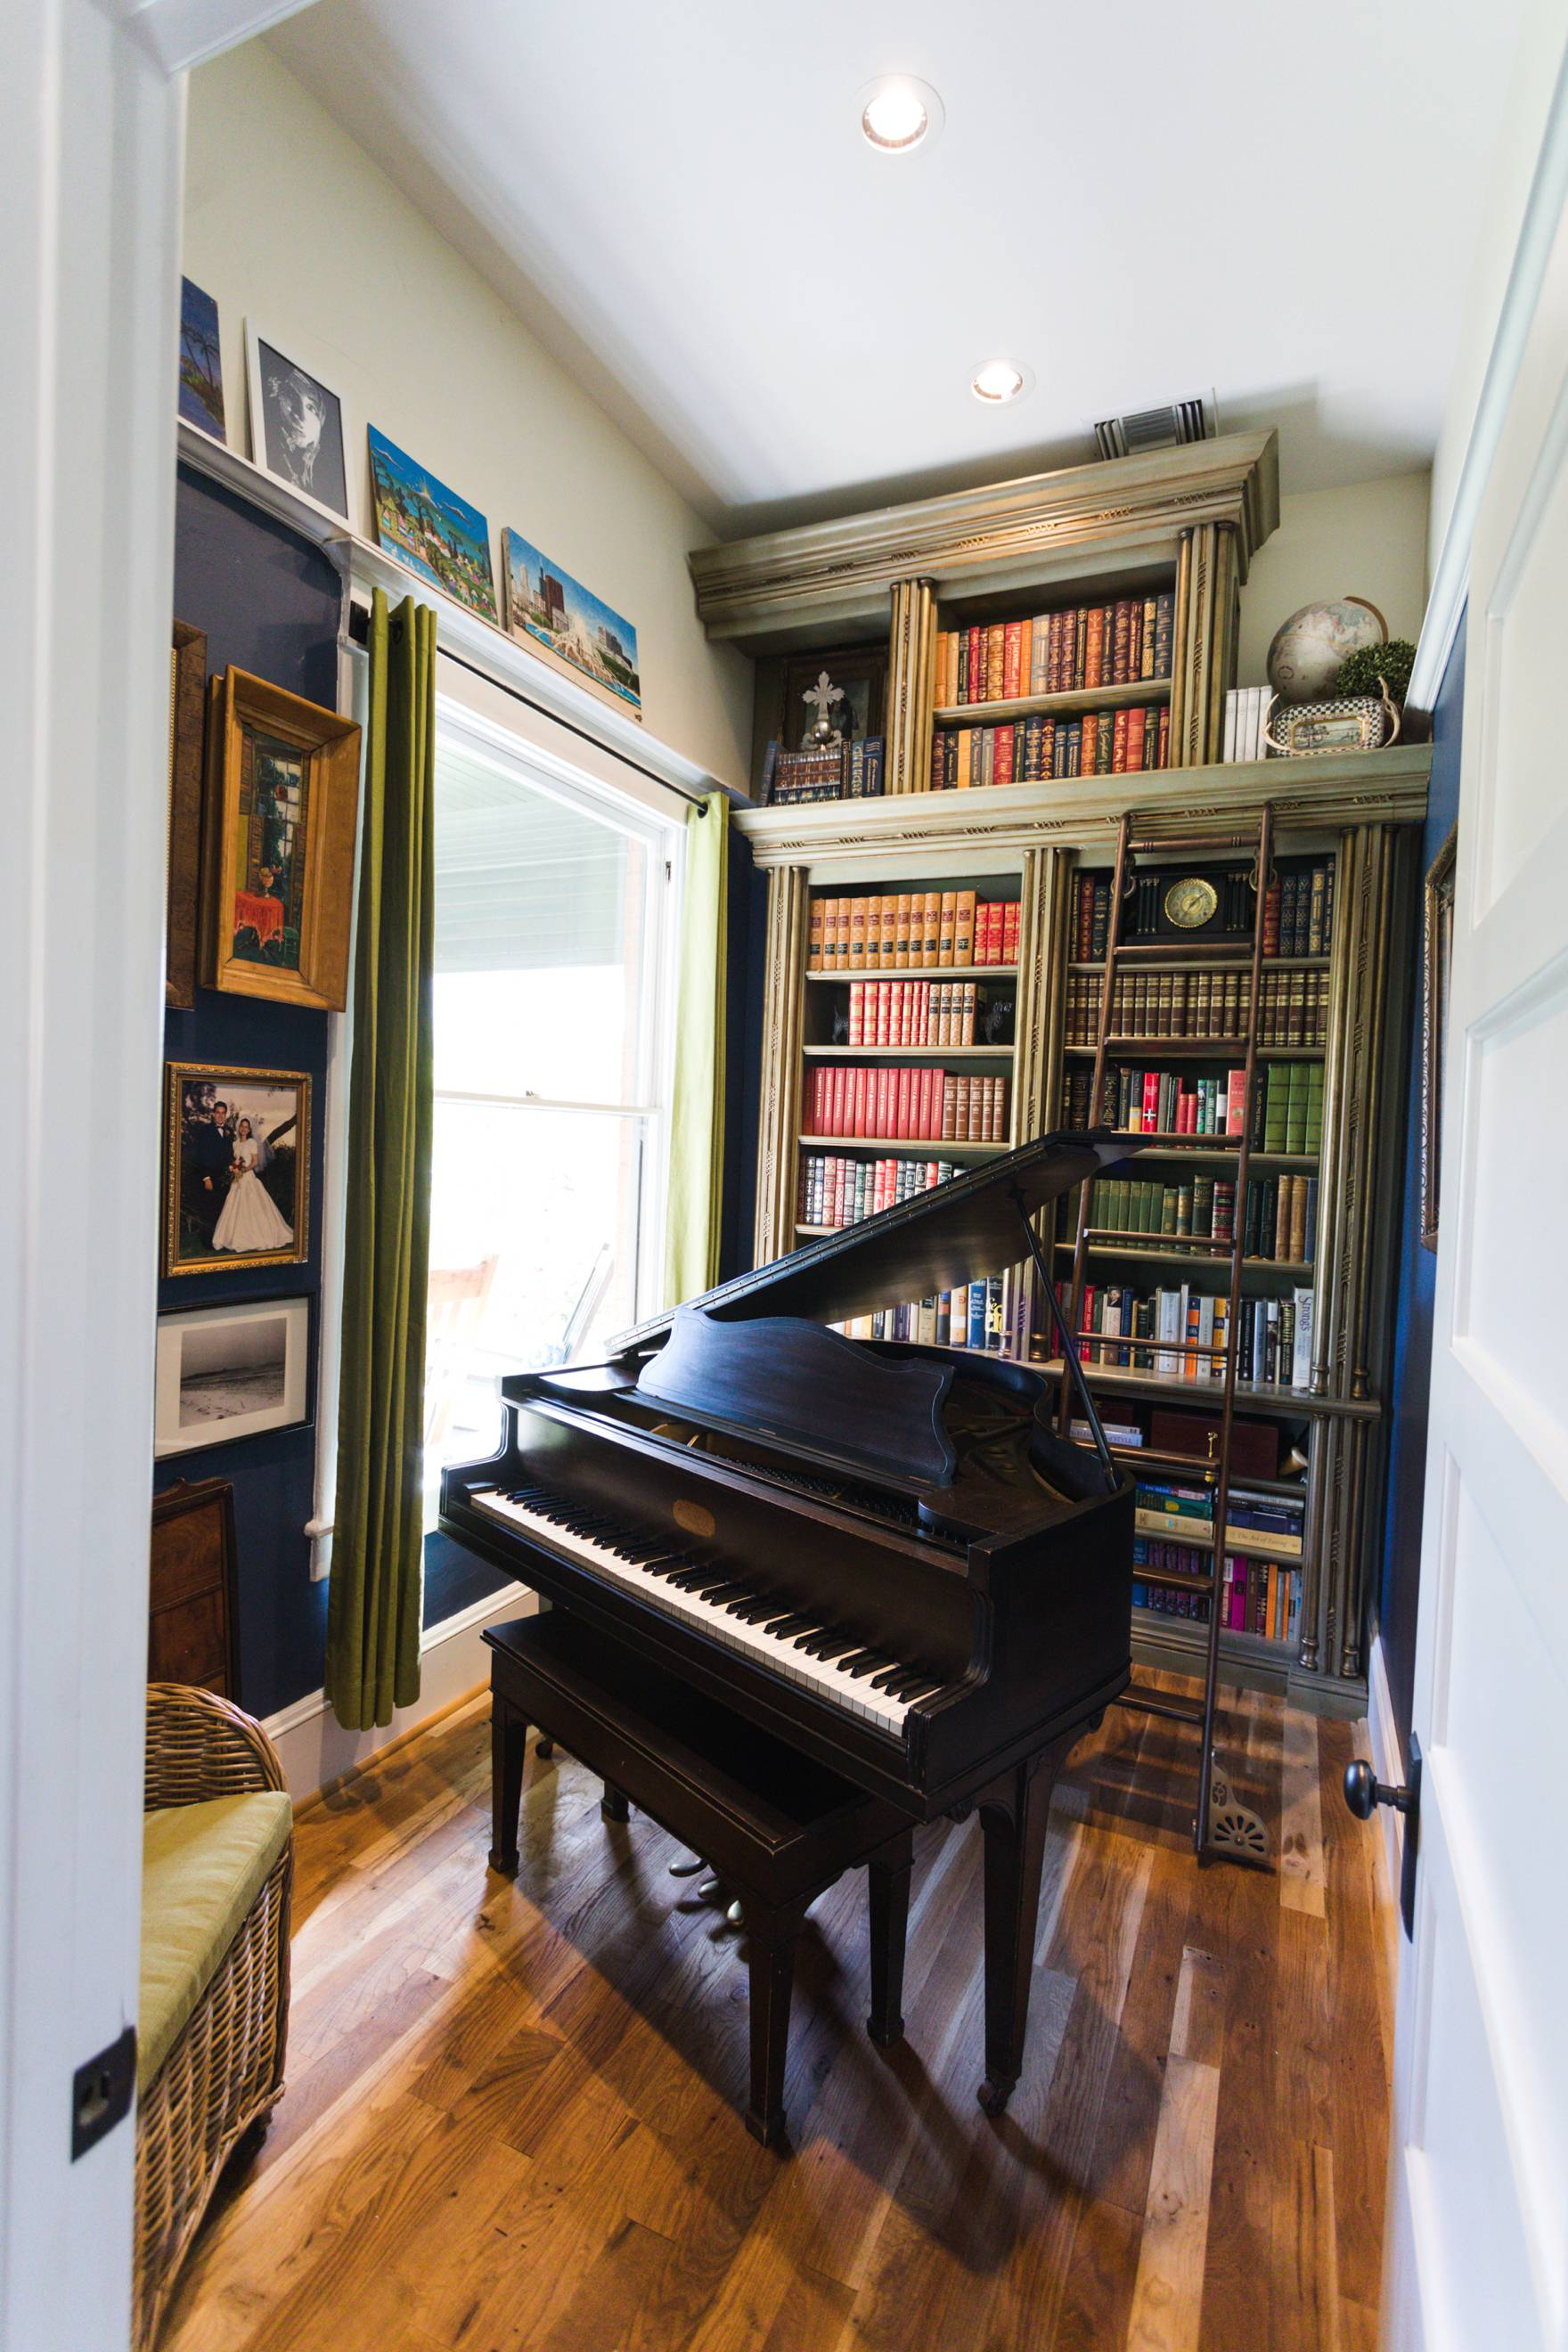 Home Tour of Boho Farm and Home in Downtown Phoenix - cottage brick style home from 1903 / reading room and piano room very Harry Potter like!